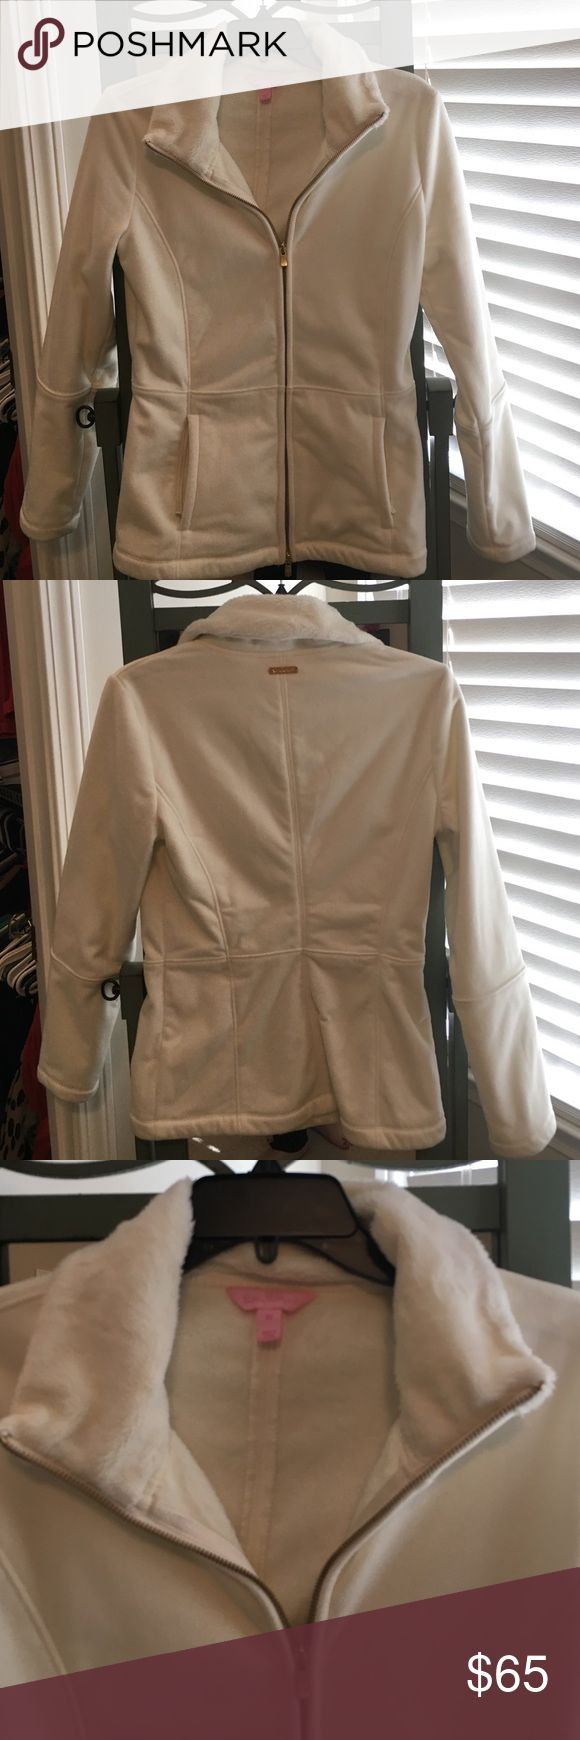 EUC Lilly Pulitzer cream jacket size XS EUC Lilly Pulitzer cream jacket size XS!  Only worn once!  This jacket is super comfy and soft.  Zip pockets in front and gold zipper in front.  Purchased for $125. Lilly Pulitzer Jackets & Coats